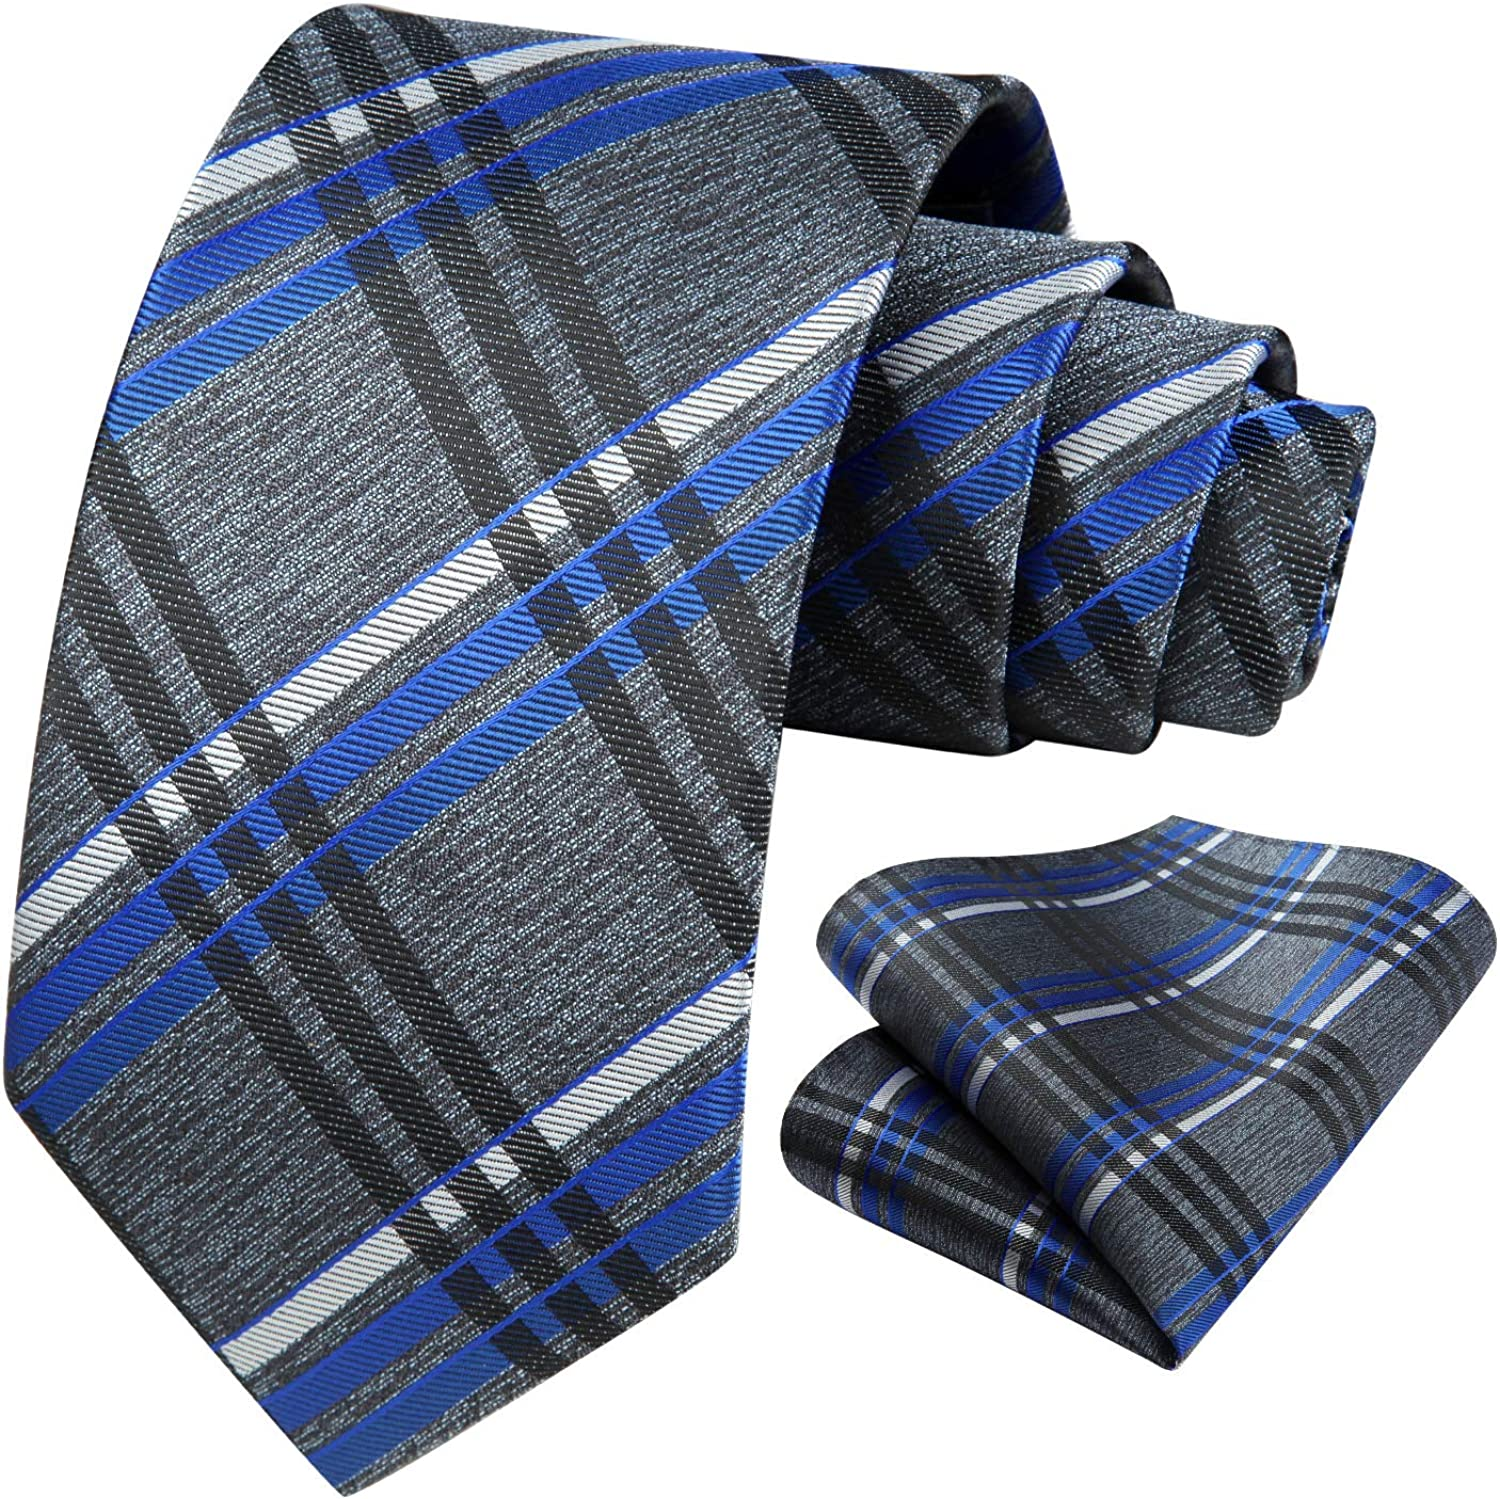 HISDERN Ties for Men Striped Silk Jacquard Mens Tie and Pocket Square Set Formal Business Neckties Wedding Party